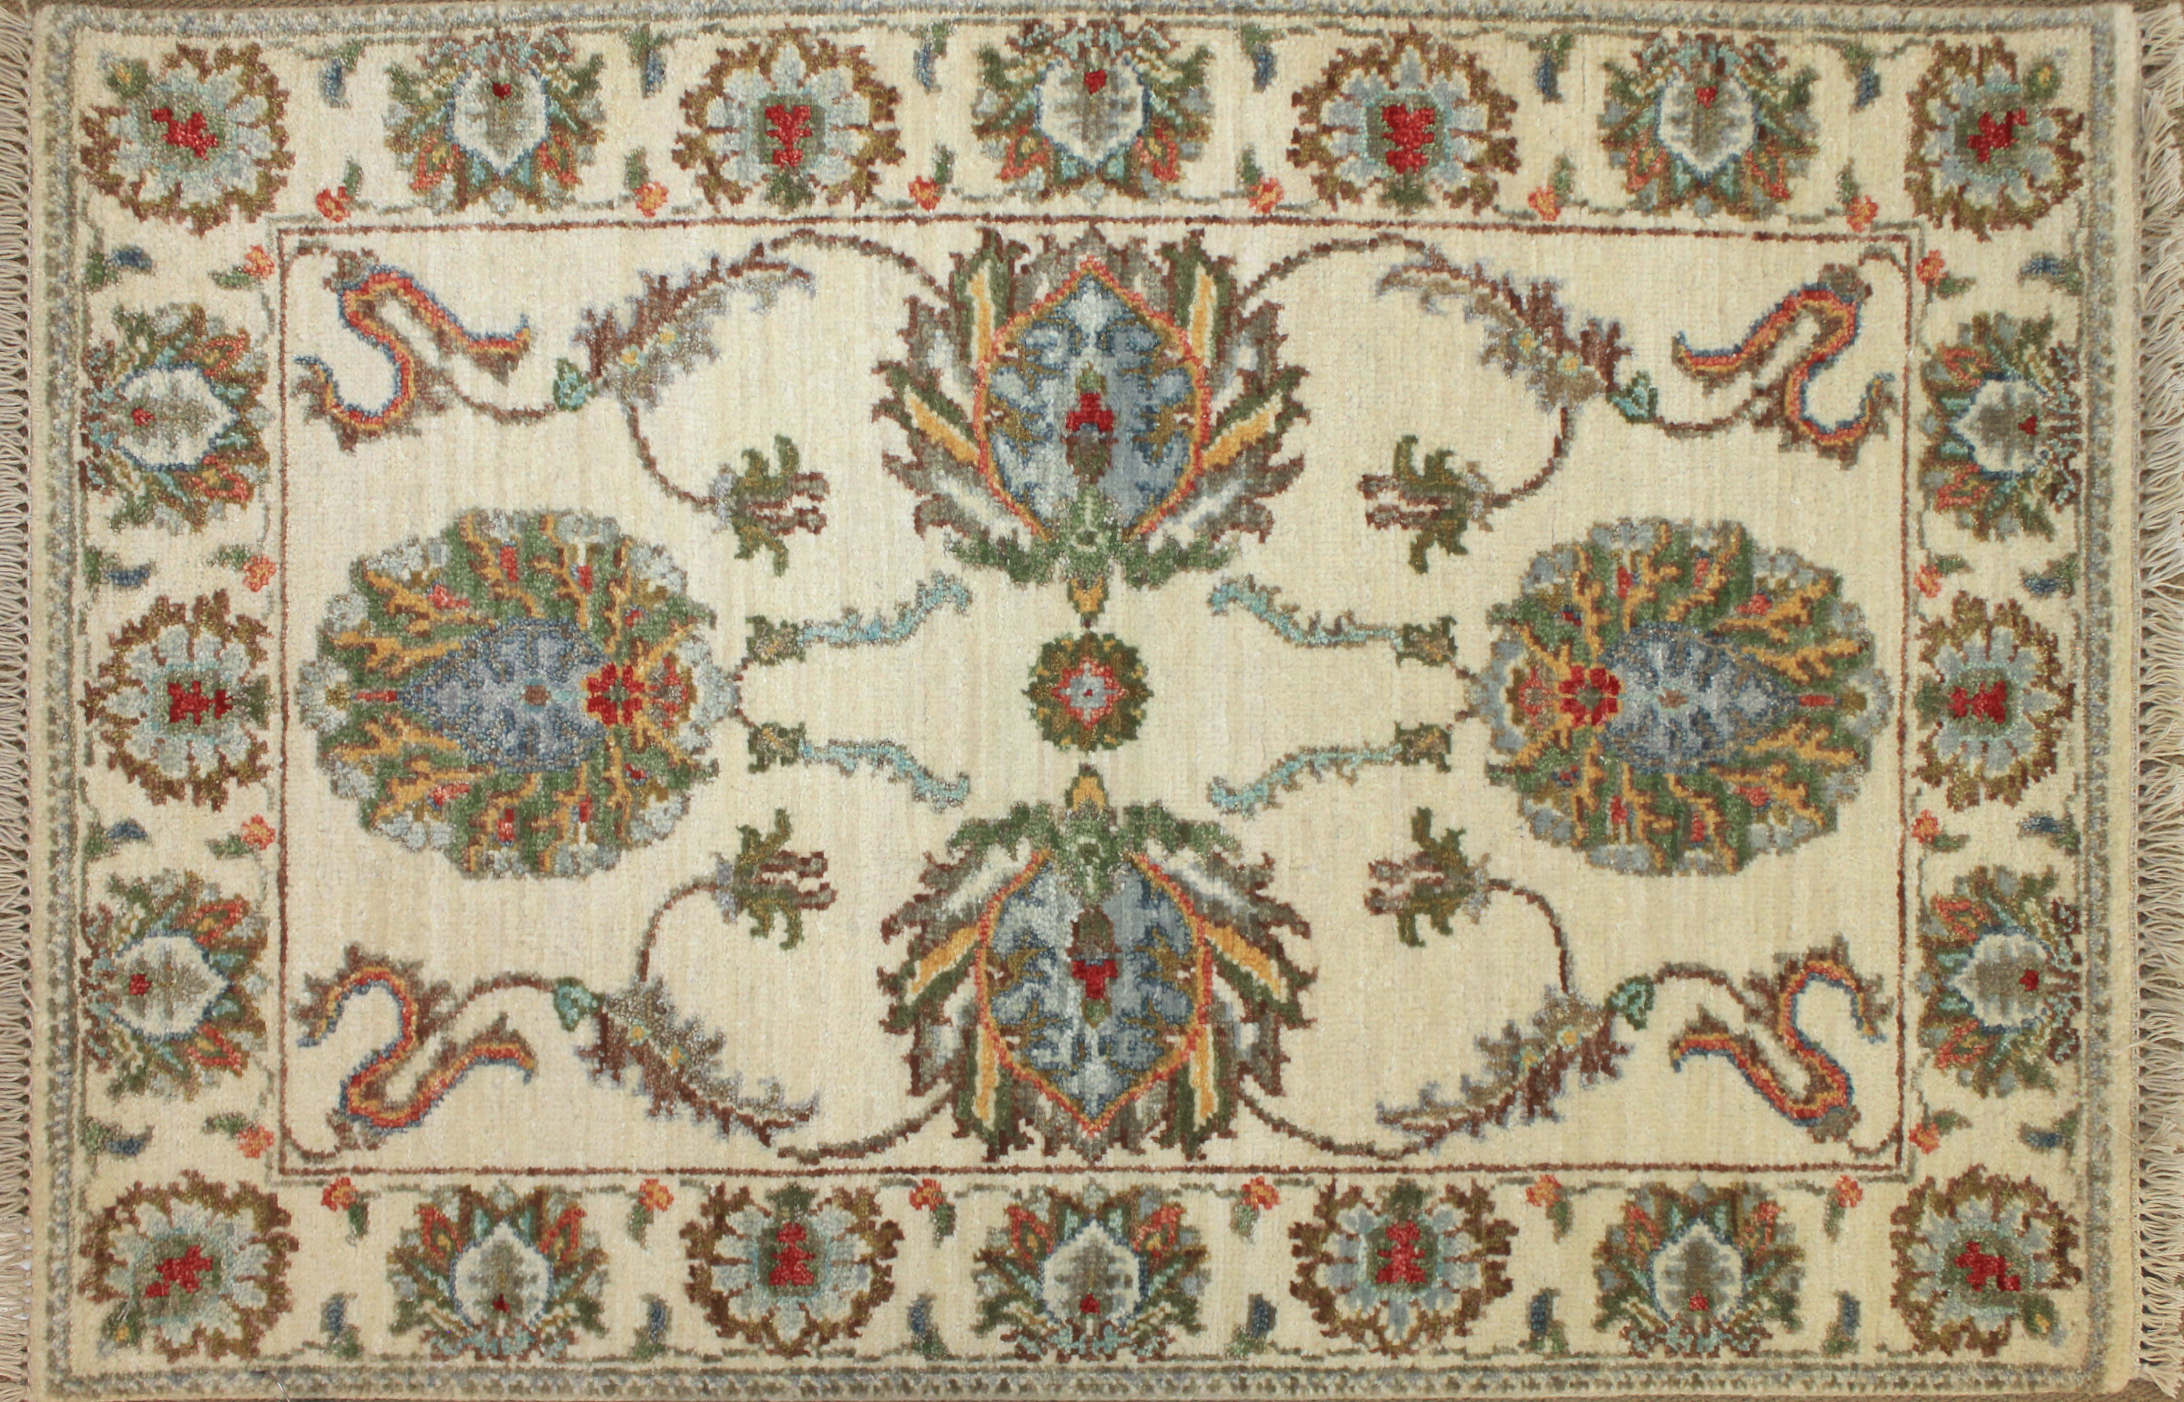 2X3 Traditional Hand Knotted Wool Area Rug - MR024759